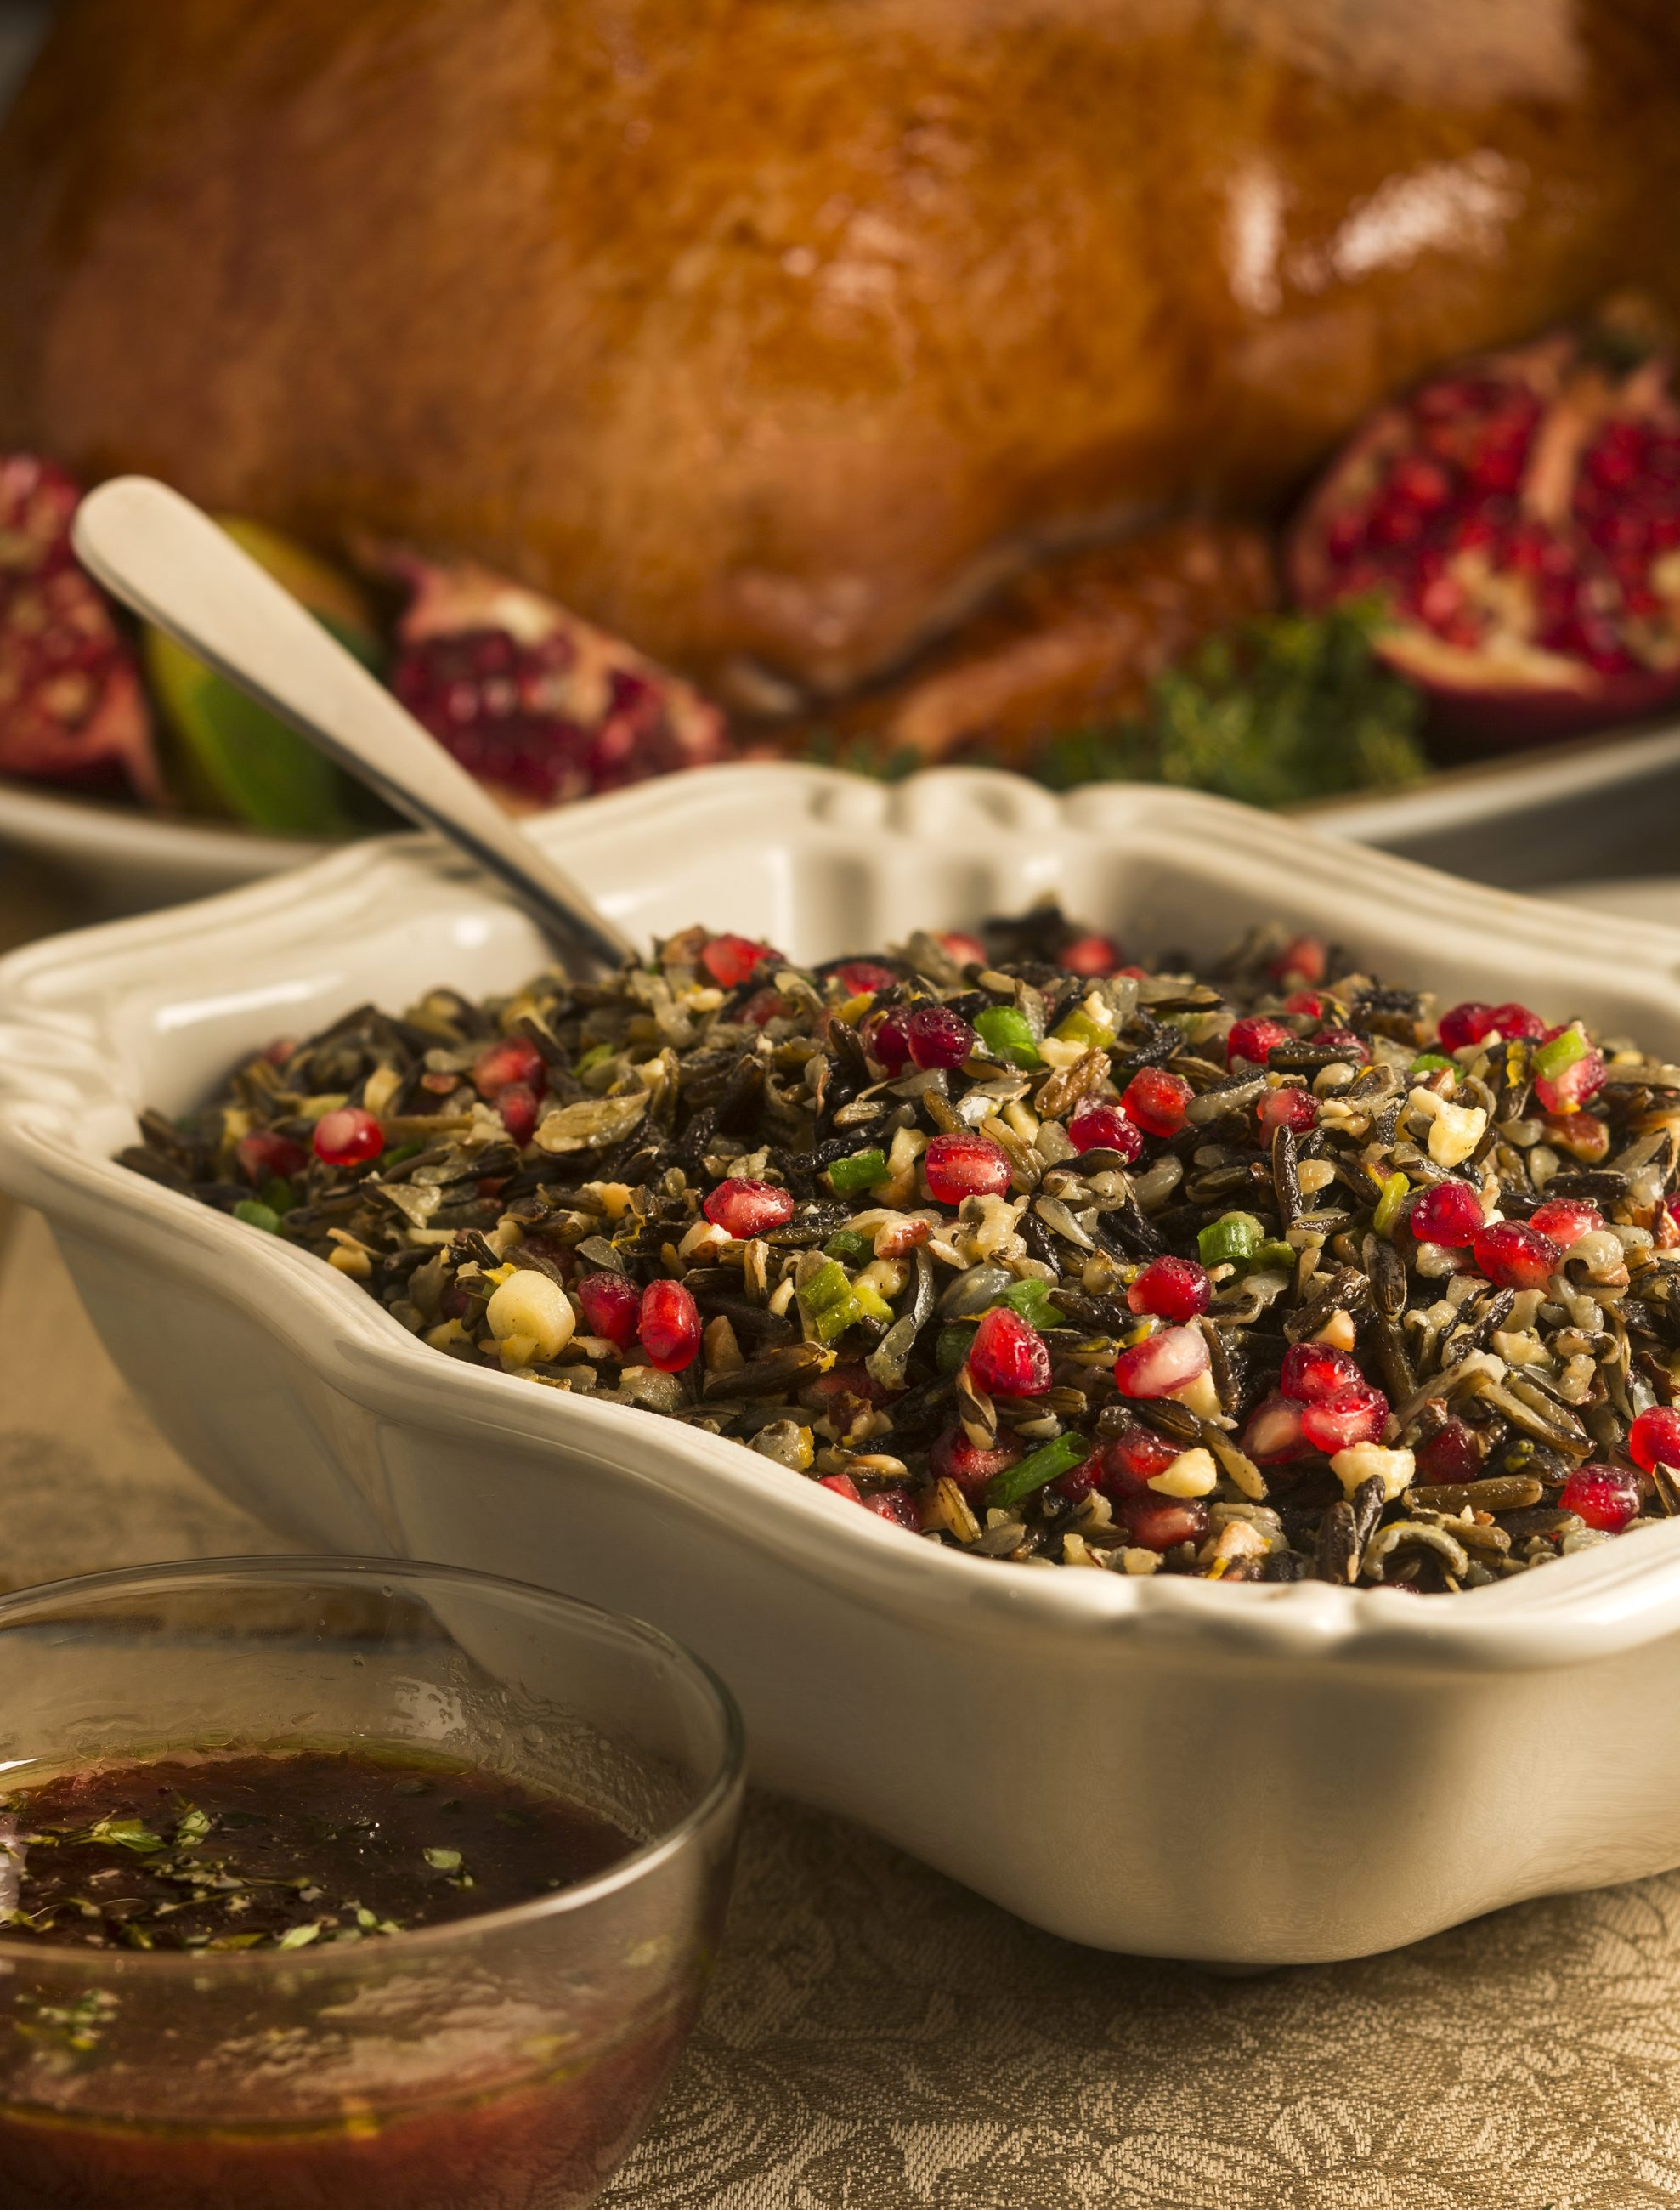 A wild rice salad with pomegranate seeds and hazelnuts  can make a tasty side dish.